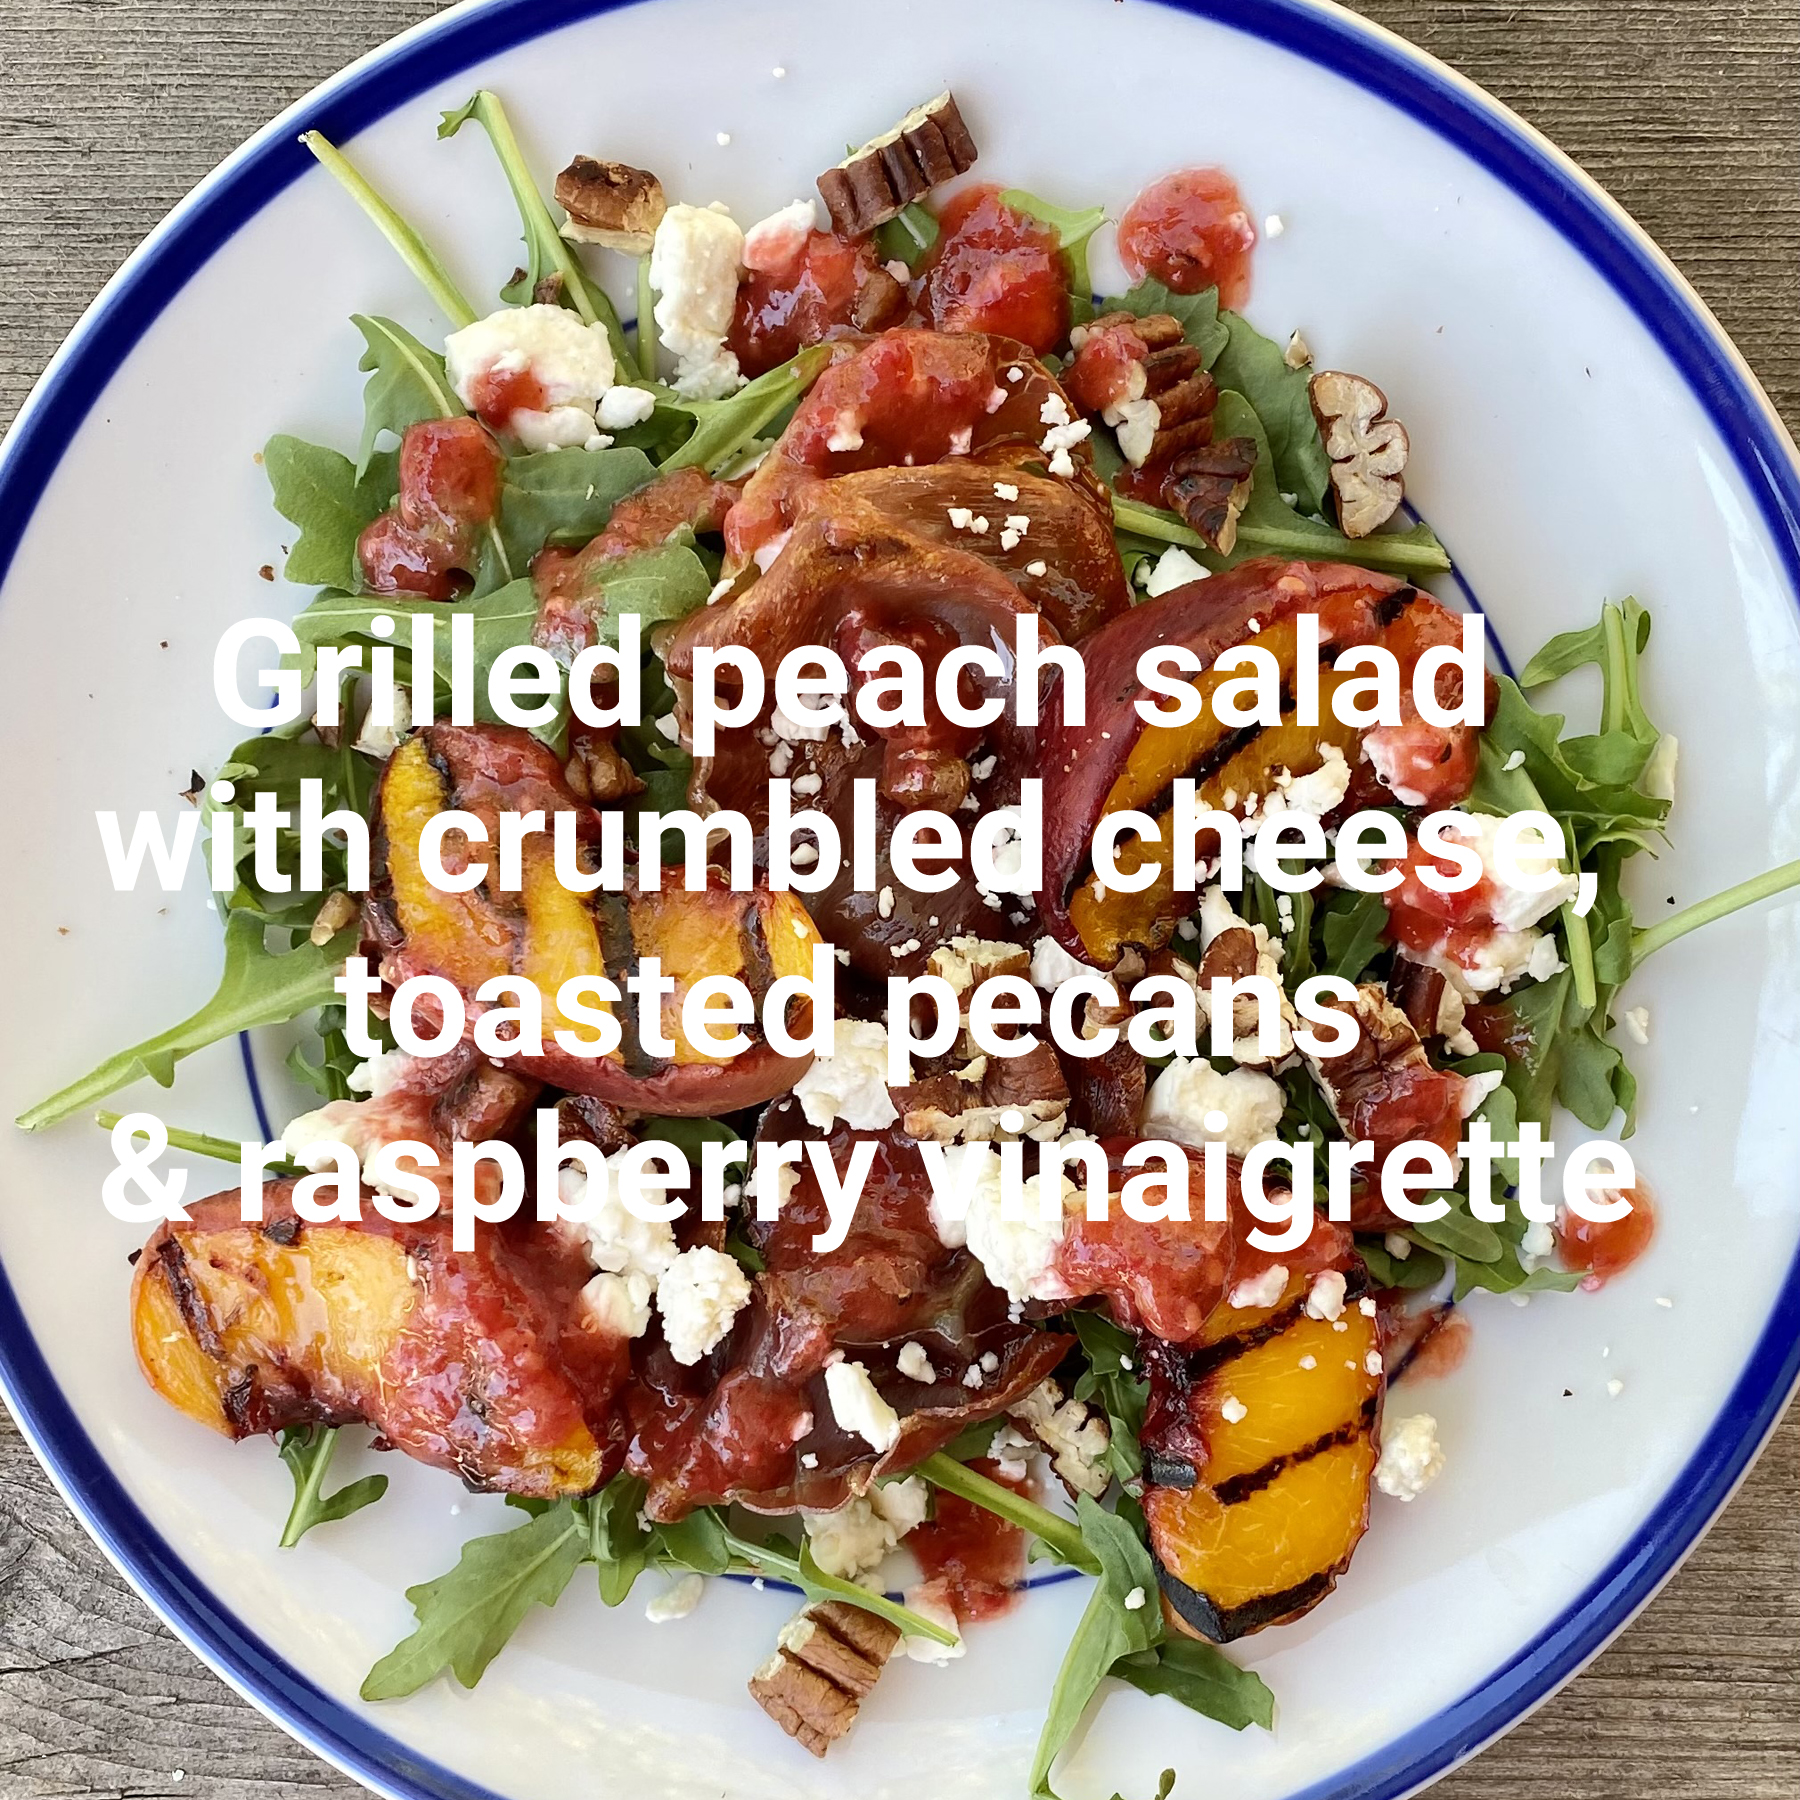 grilled-peach-salad-with-crumbled-cheese-toasted-pecans-raspberry-vinaigrette.jpg